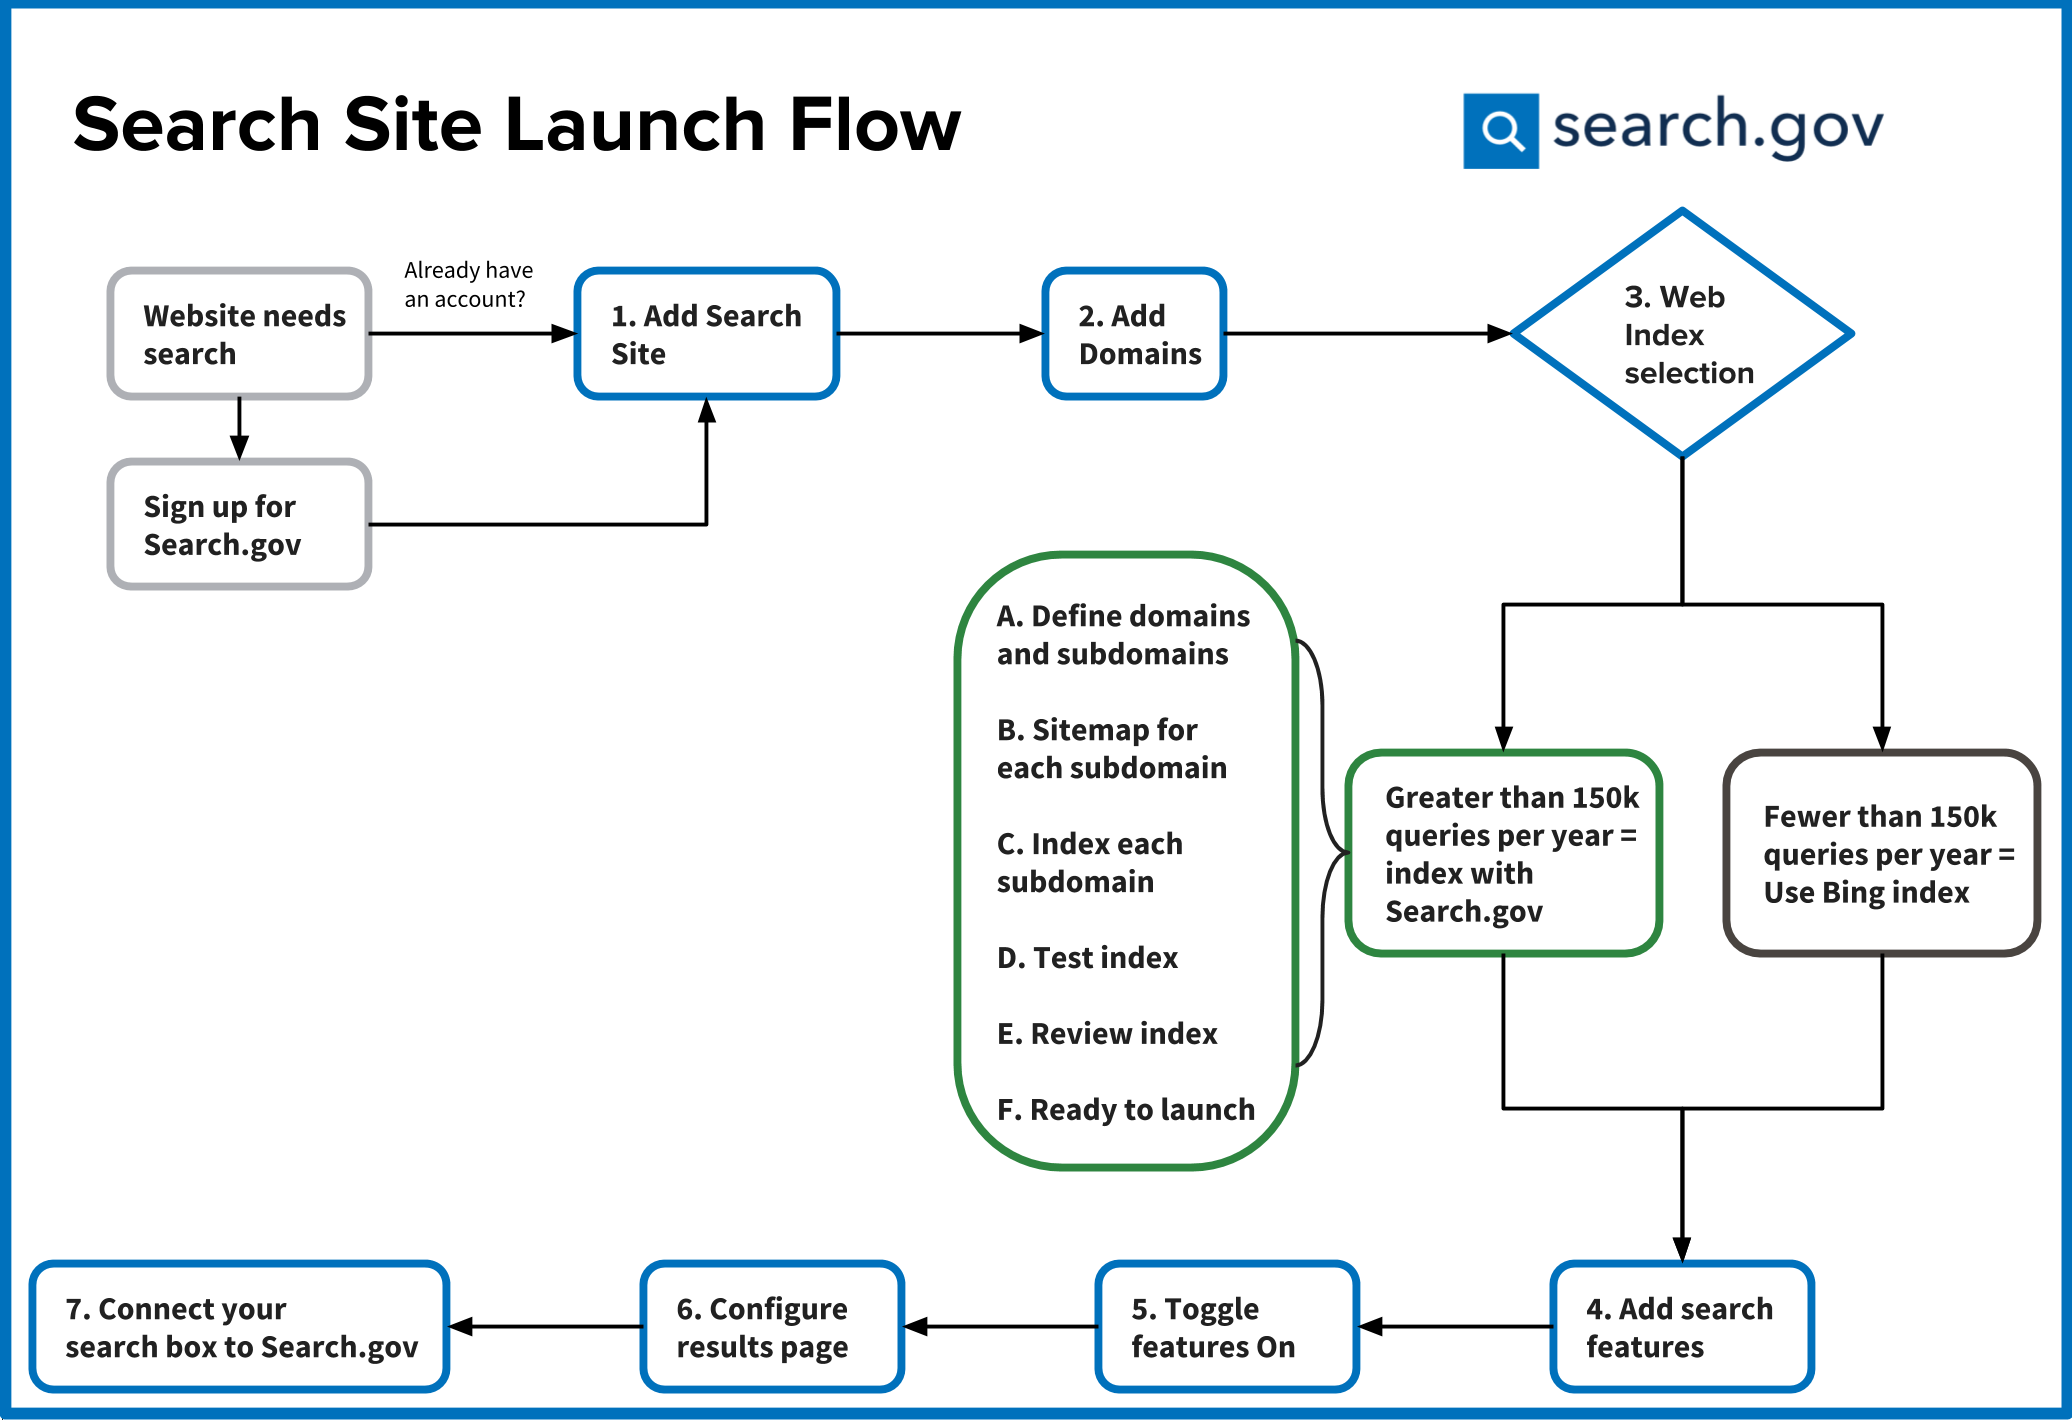 Flow chart showing the steps involved in launching a search site on Search.gov